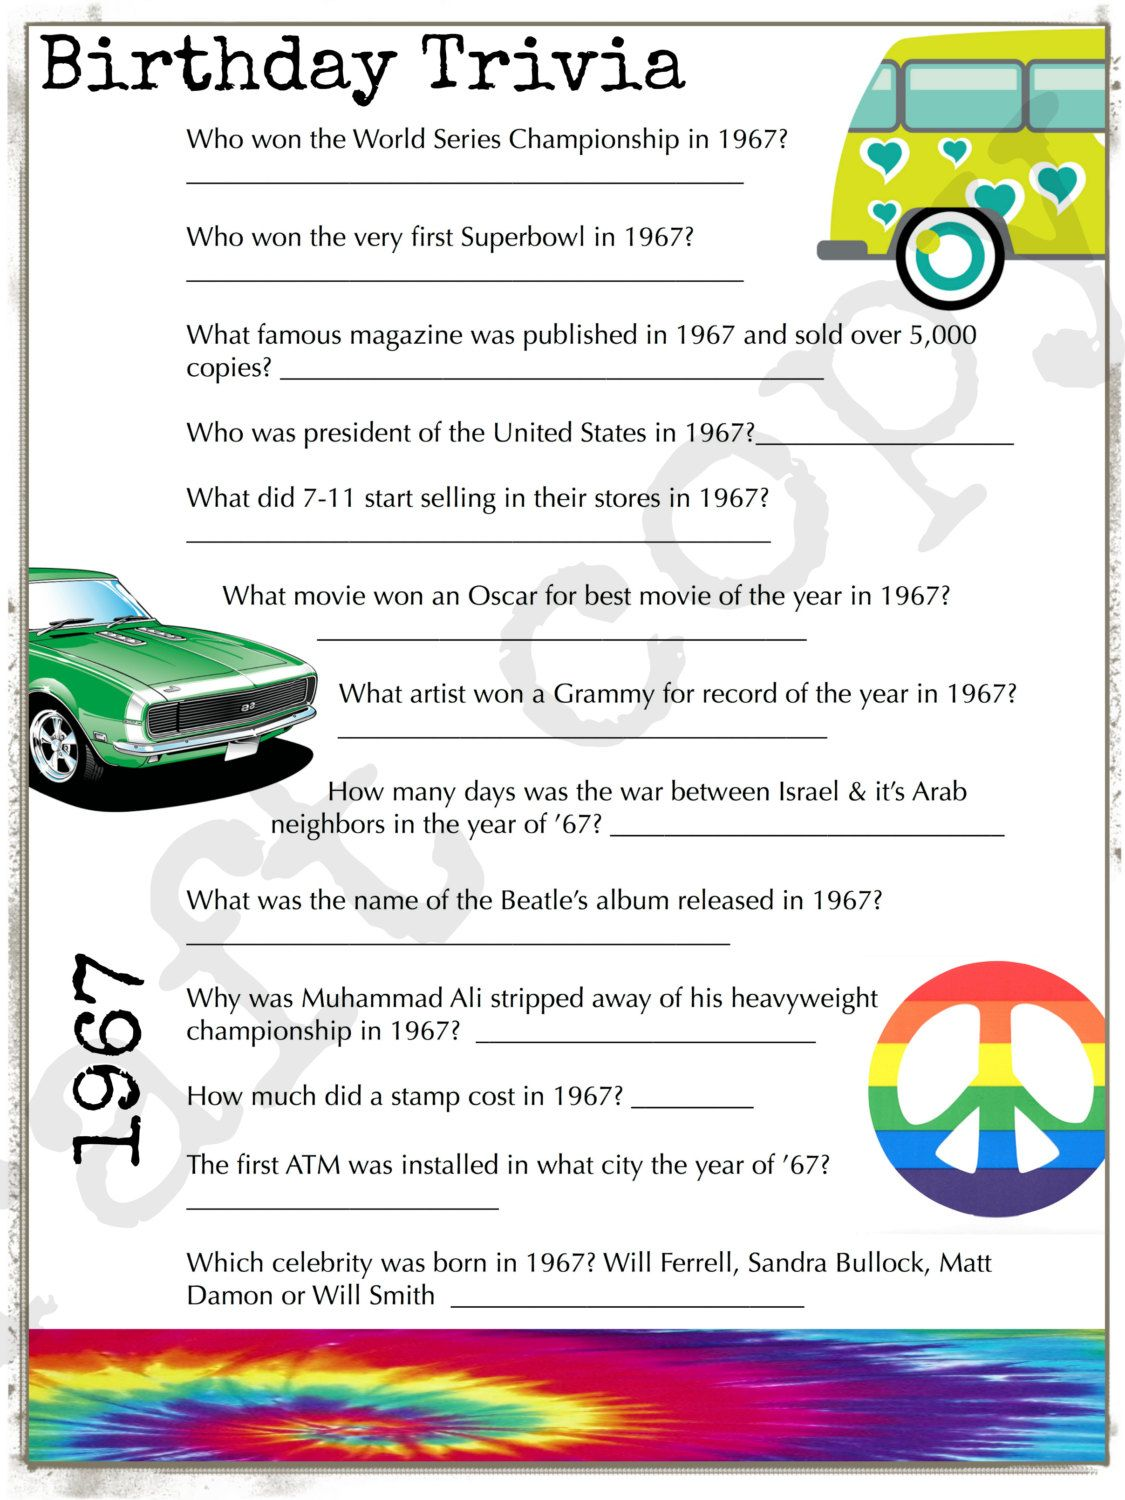 1967 Birthday Trivia Game